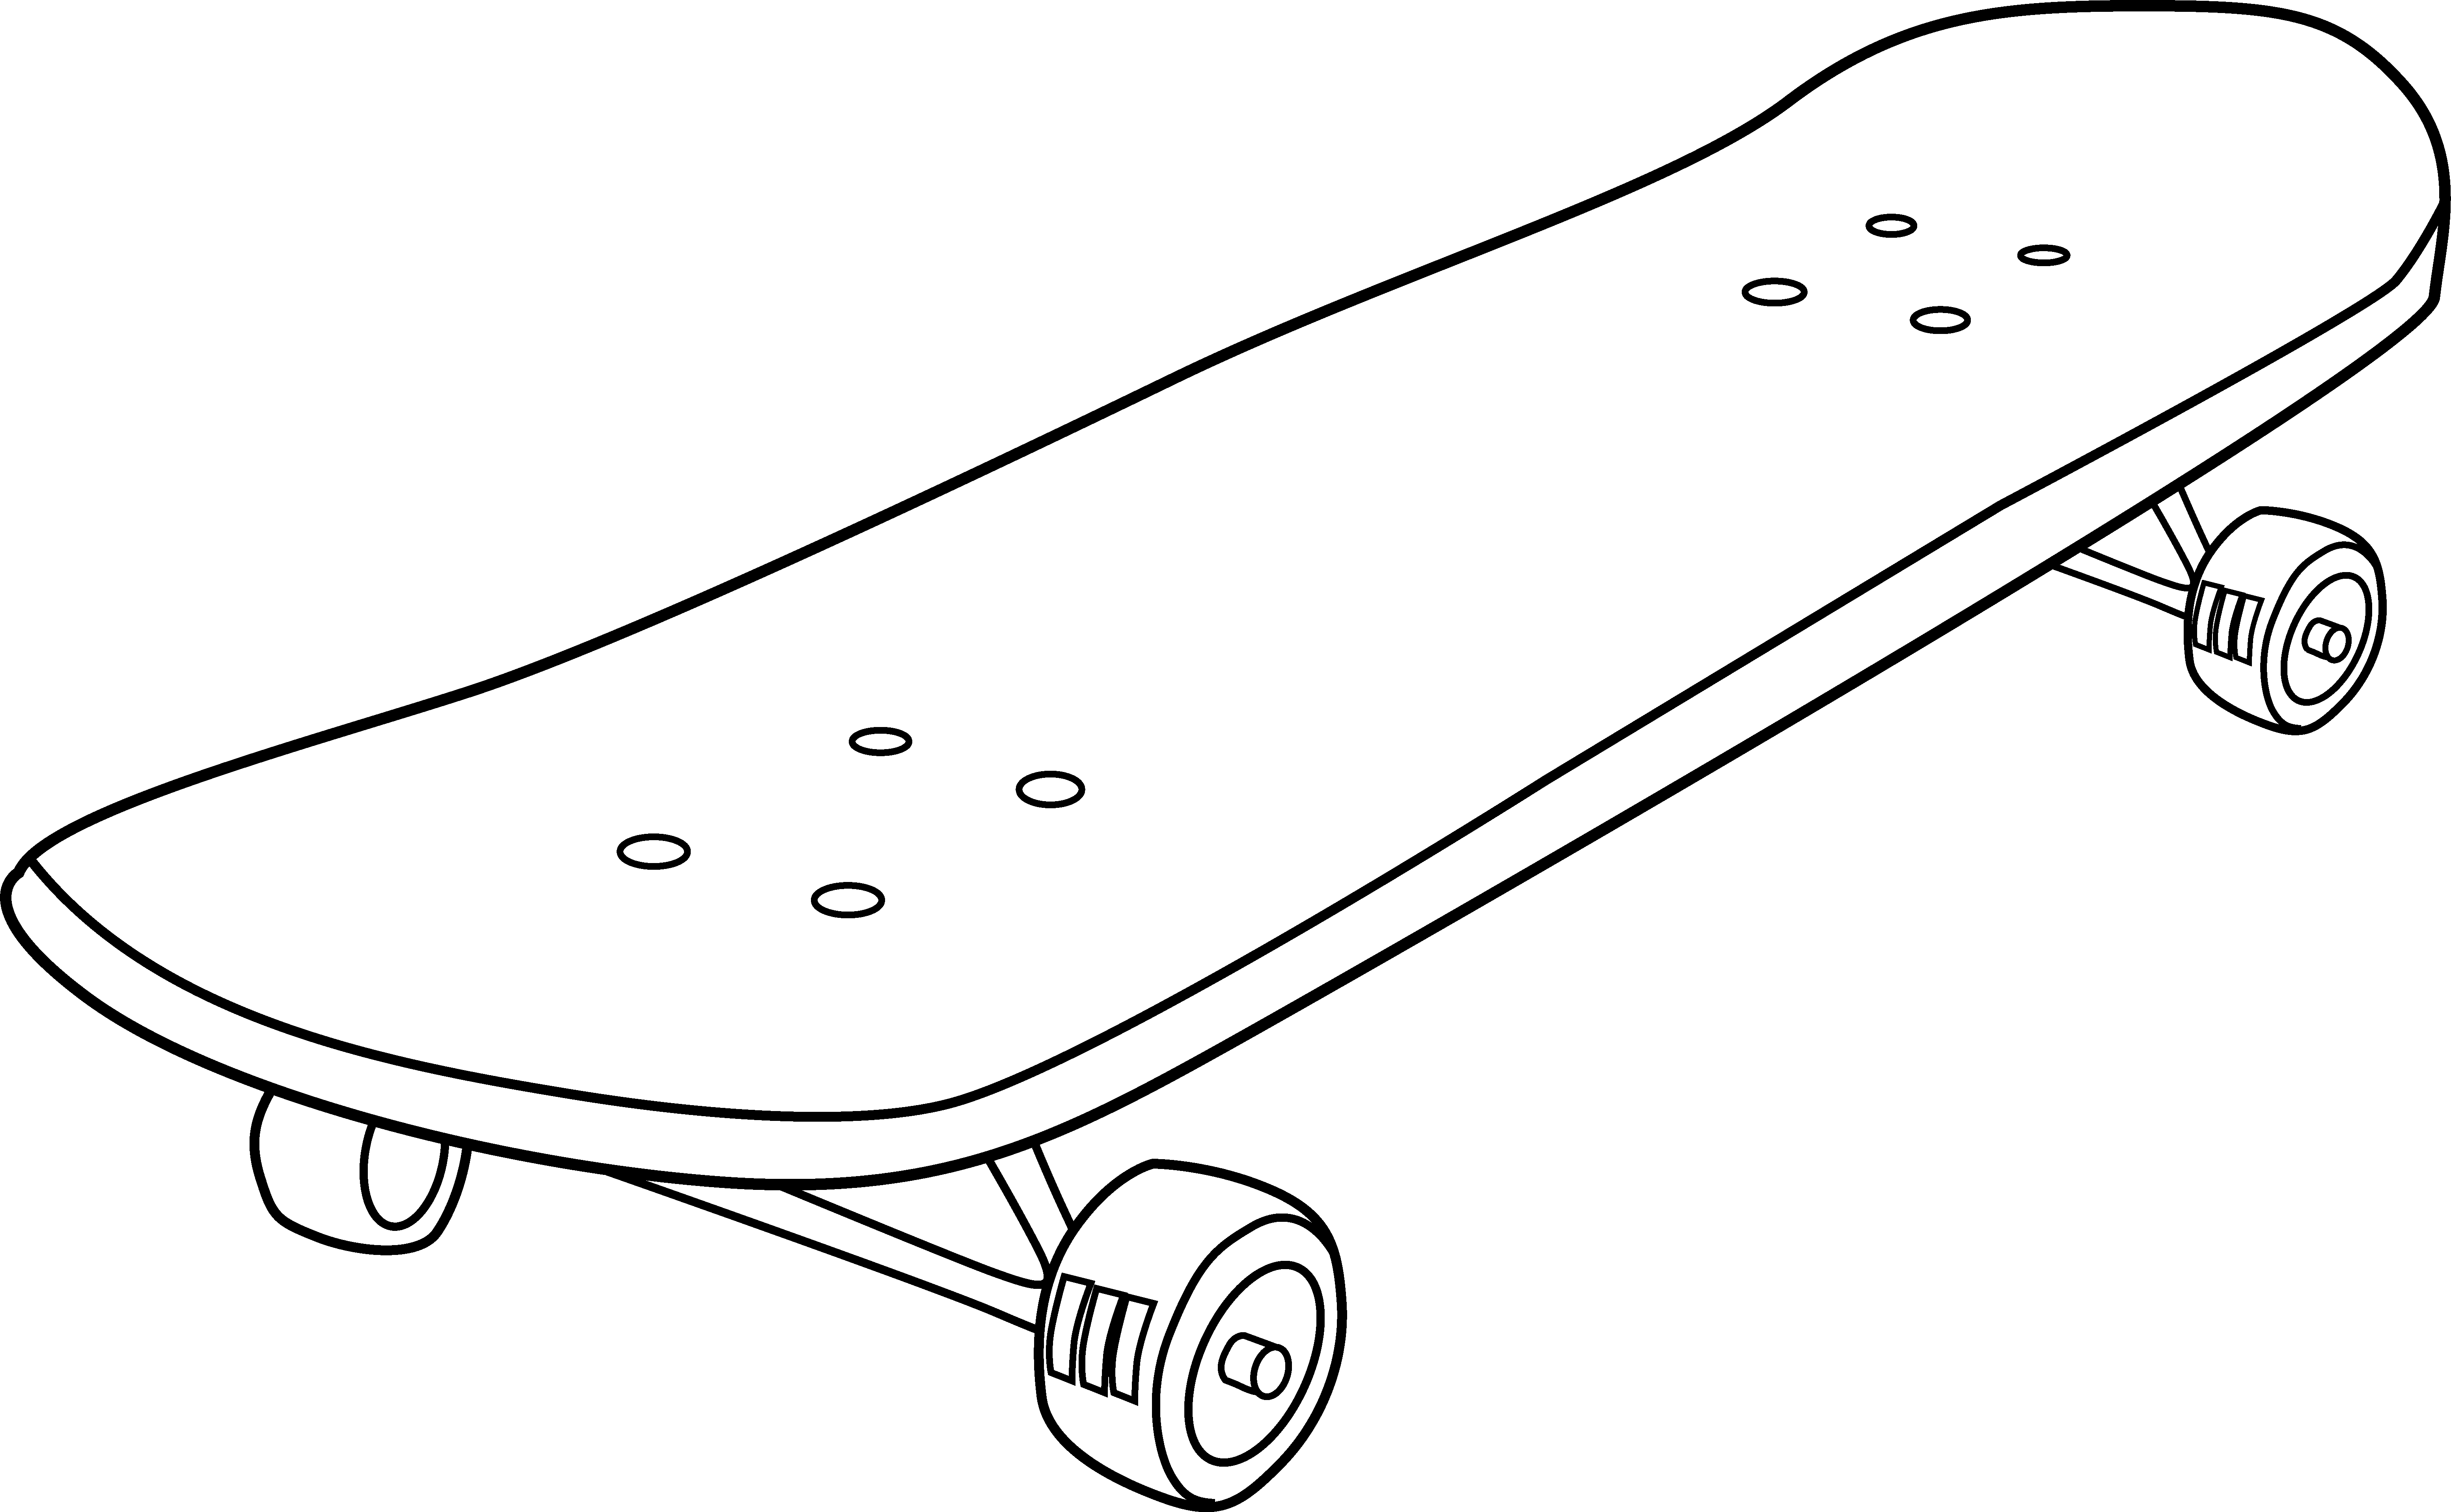 Free Skate Board Images, Download Free Clip Art, Free Clip.